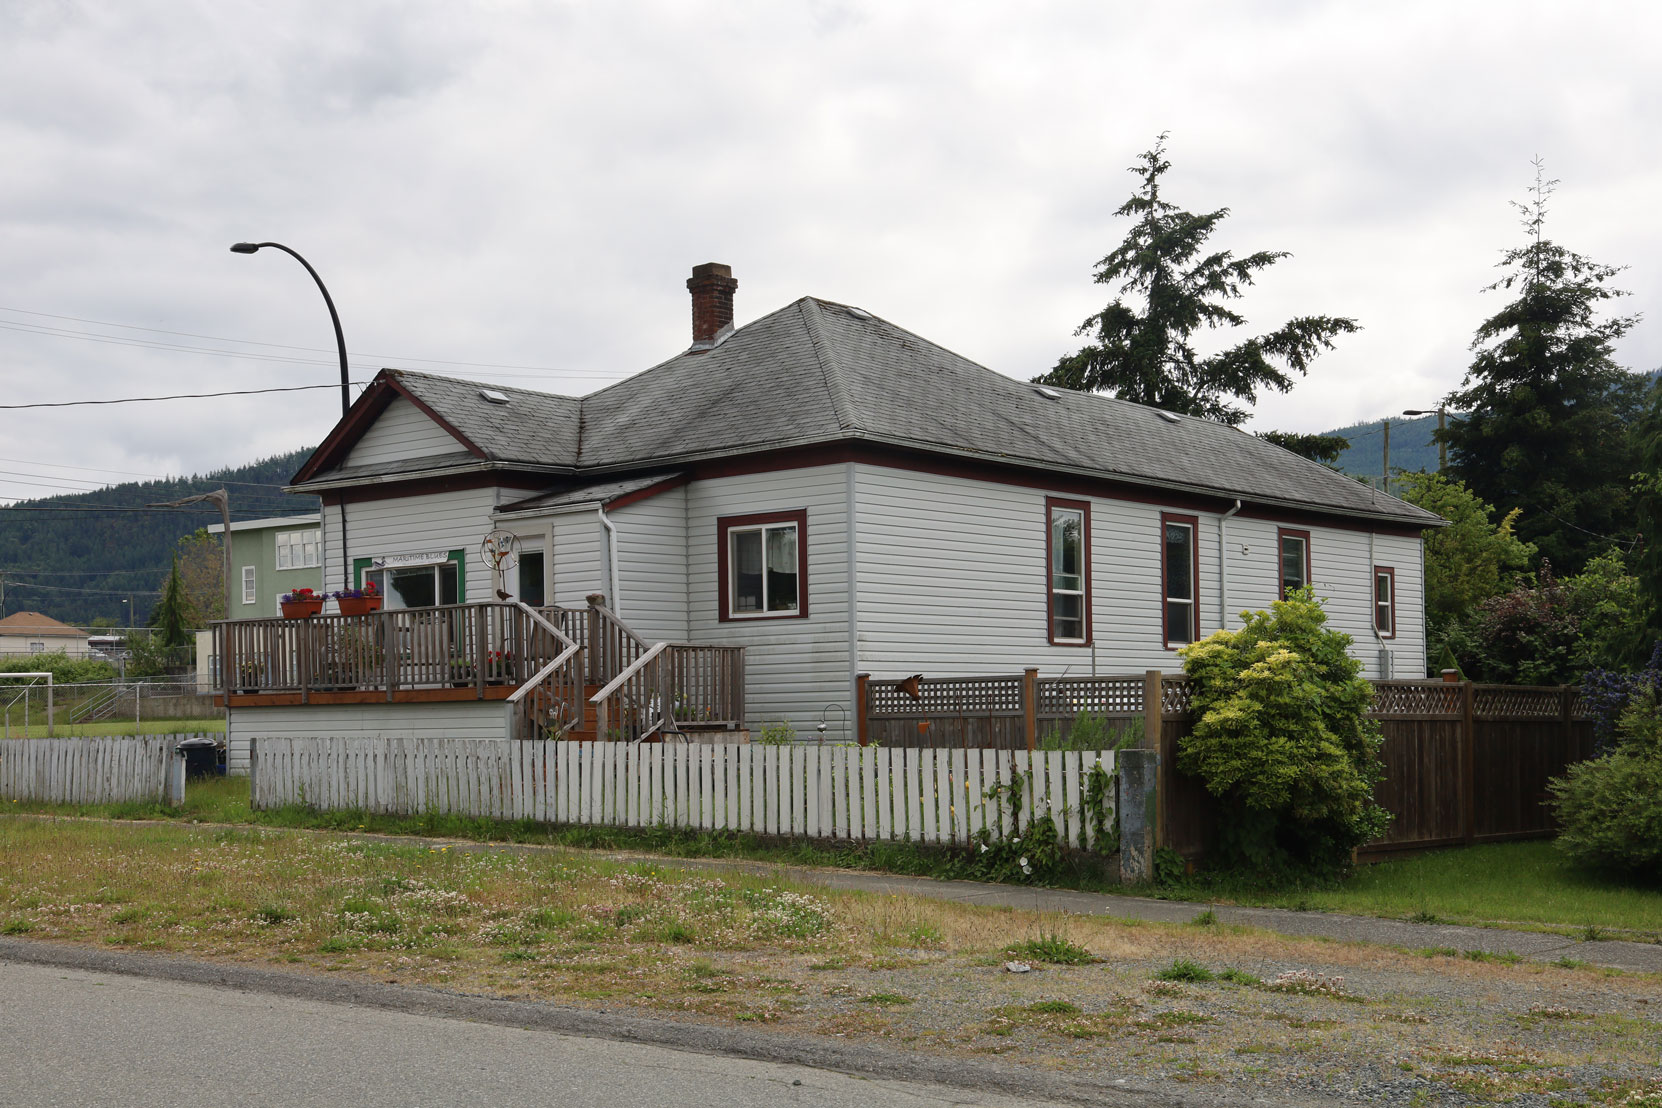 910 3rd Avenue, built in 1908 (photo: Mark Anderson)